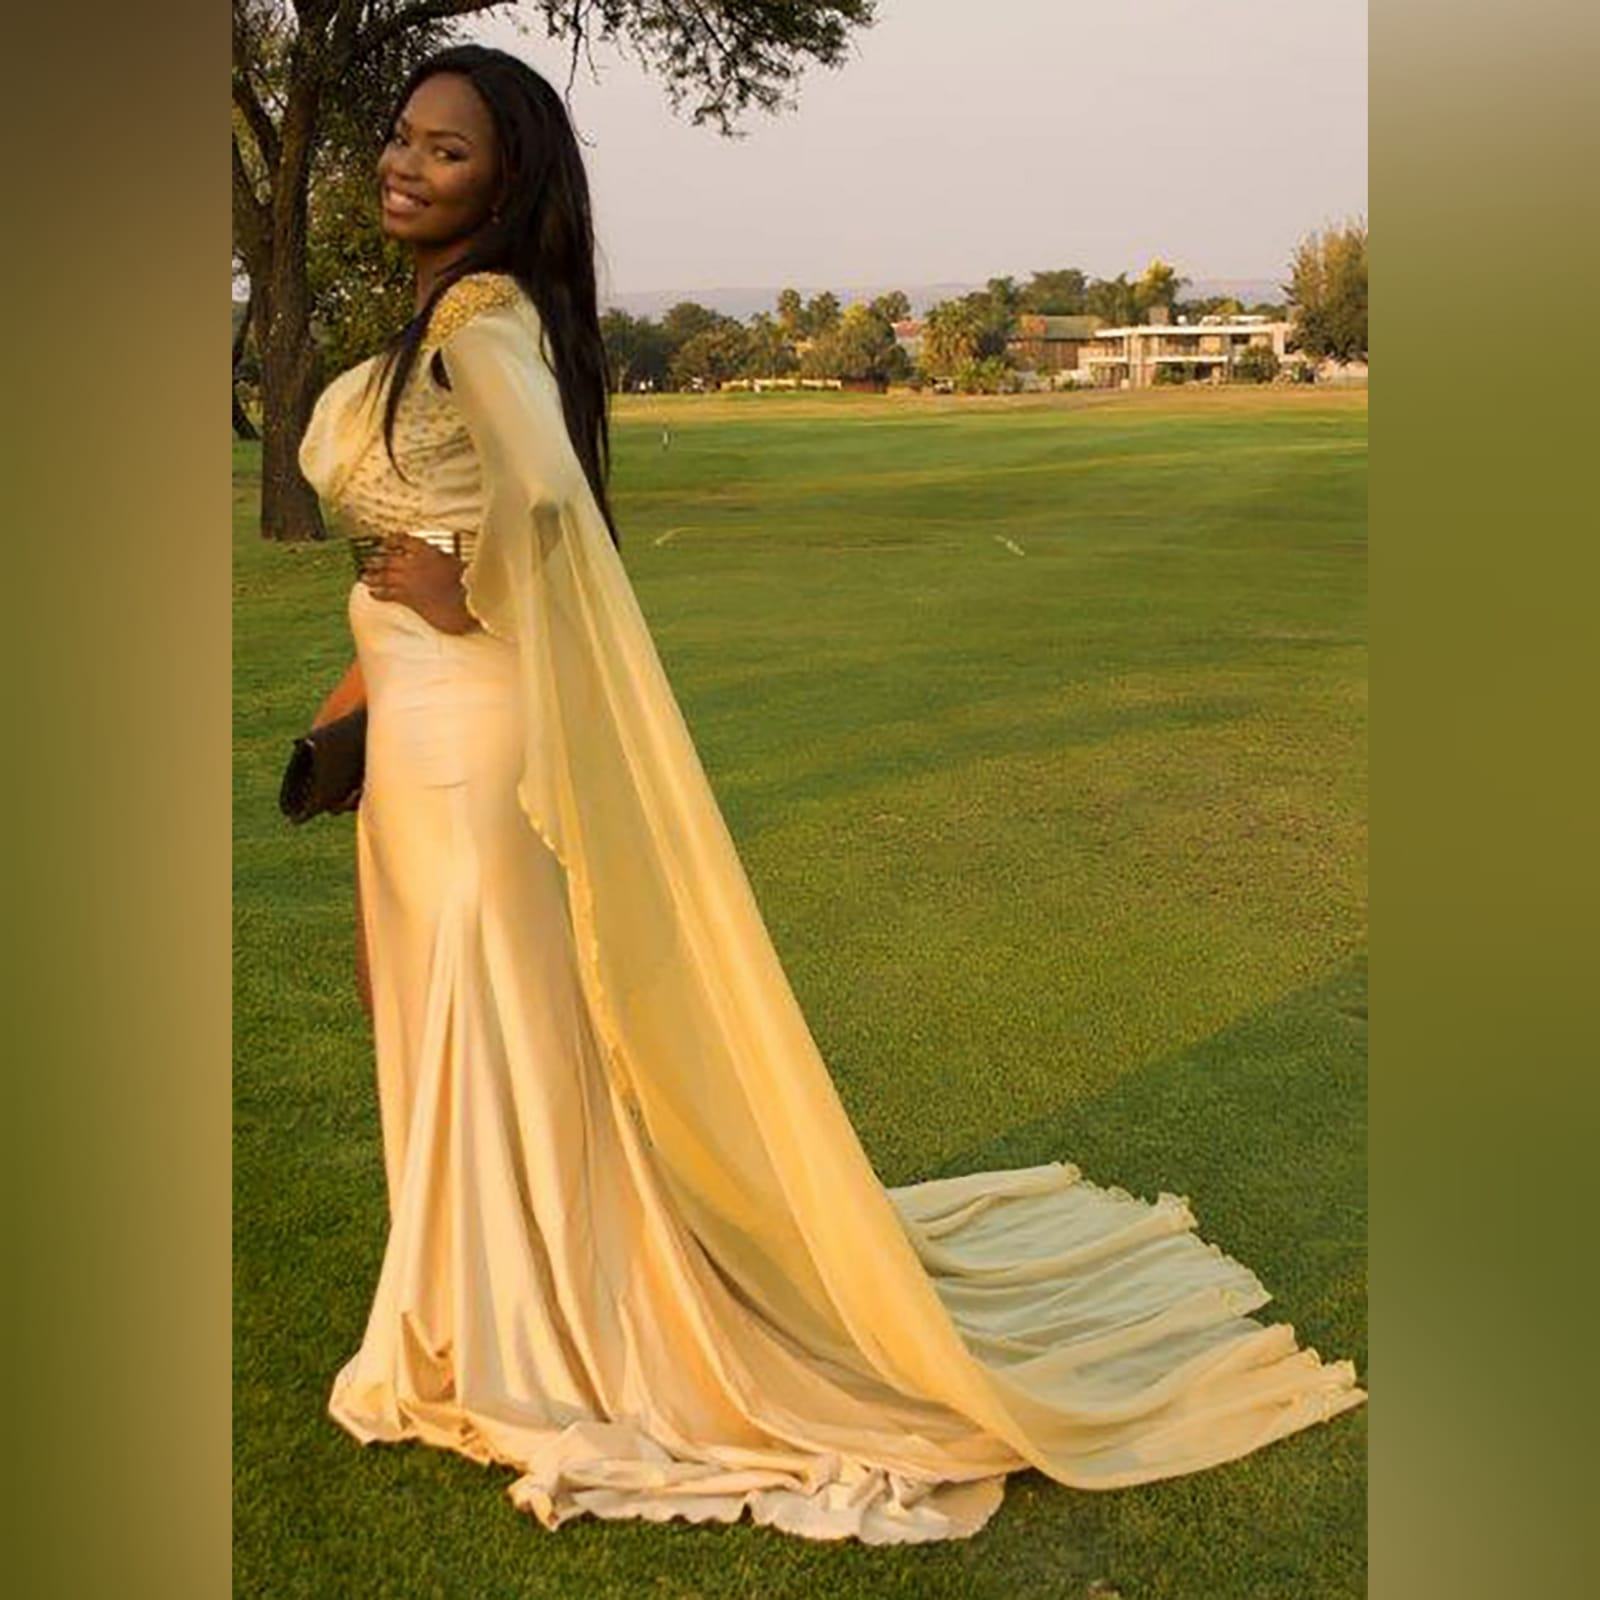 Gold long goddess inspired prom dress 4 gold long goddess inspired prom dress. Long fitted dress with a high slit and a train. With bust detailed with gold beads and a chiffon cowl neck, with a dramatic chiffon cape beaded on the shoulders. With a long train.